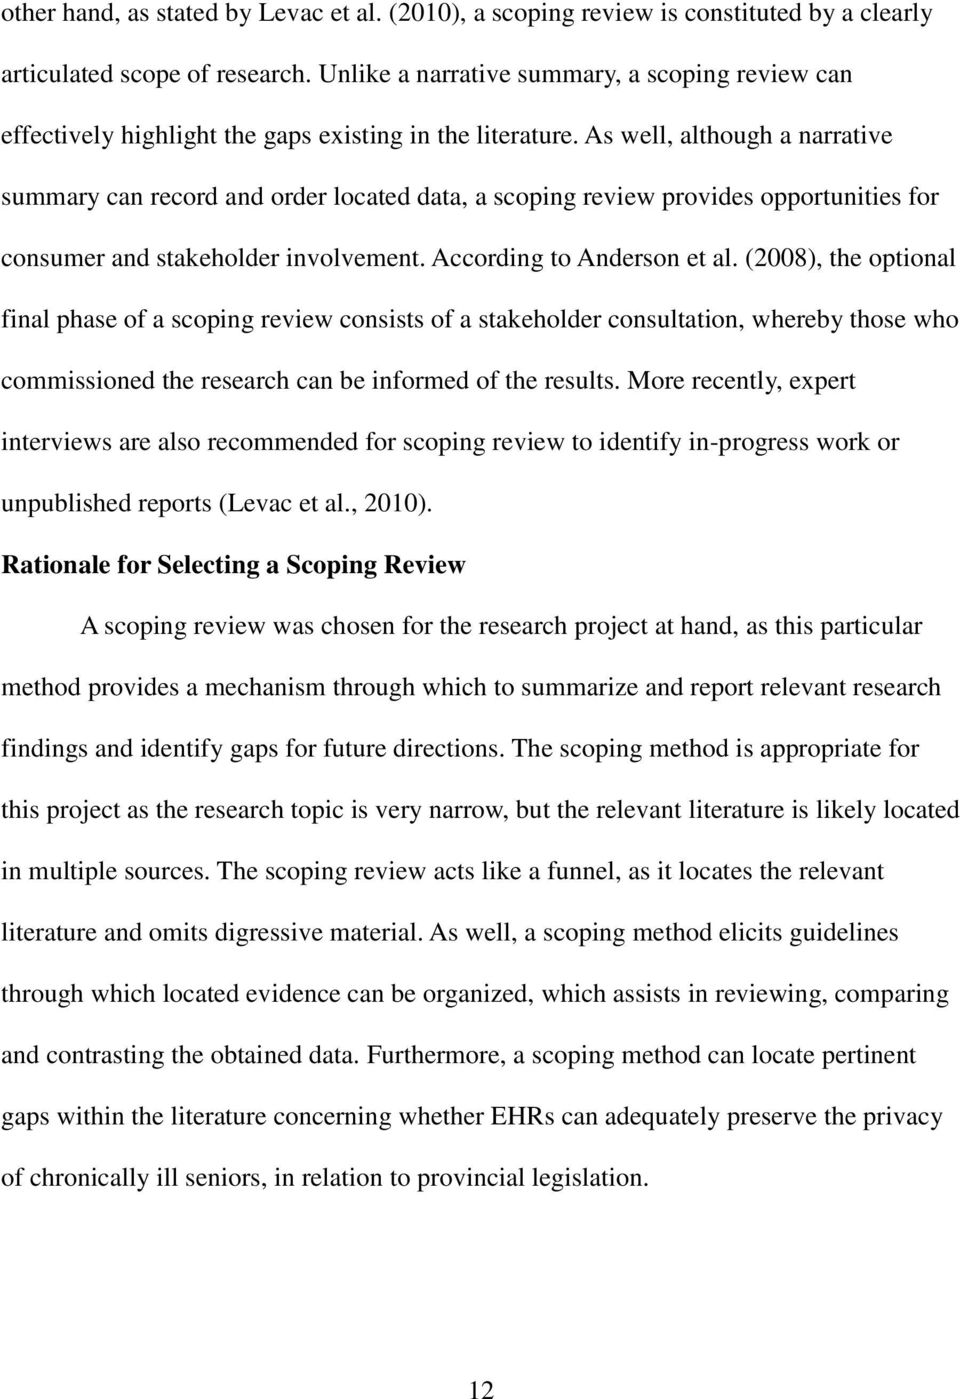 As well, although a narrative summary can record and order located data, a scoping review provides opportunities for consumer and stakeholder involvement. According to Anderson et al.